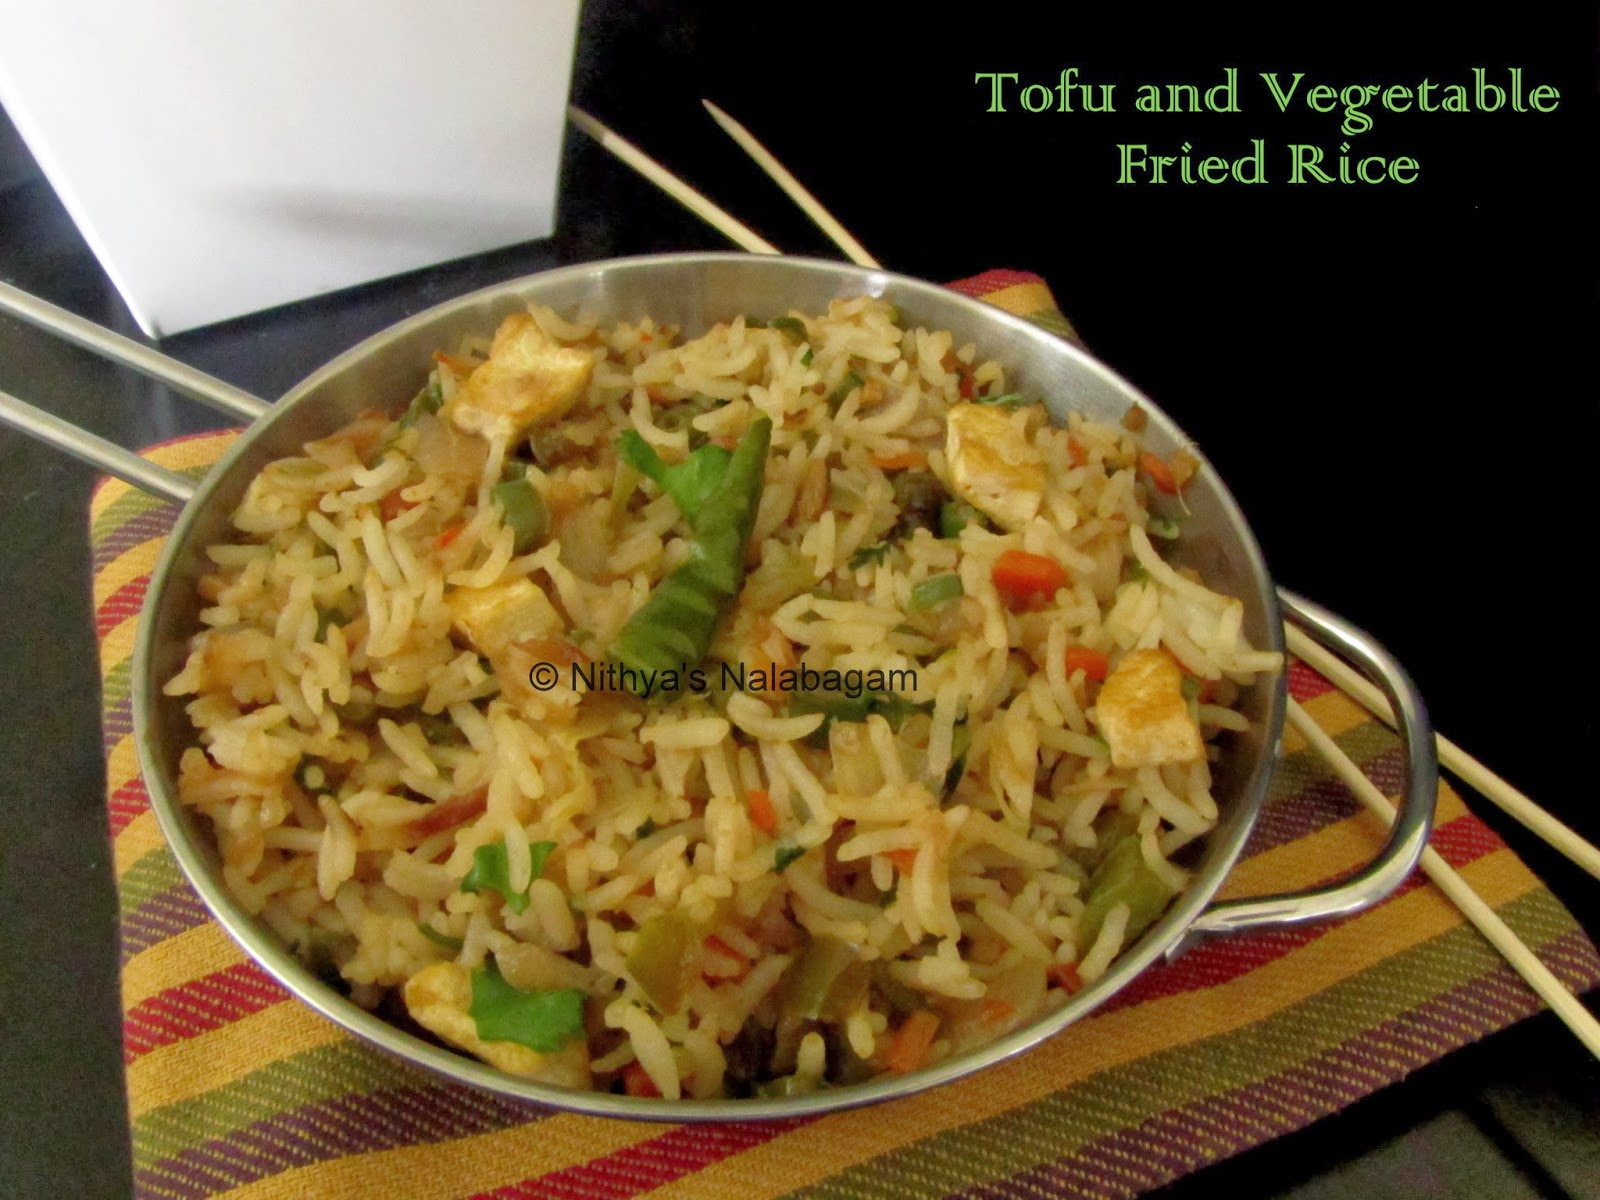 Tofu and Vegetable Fried Rice